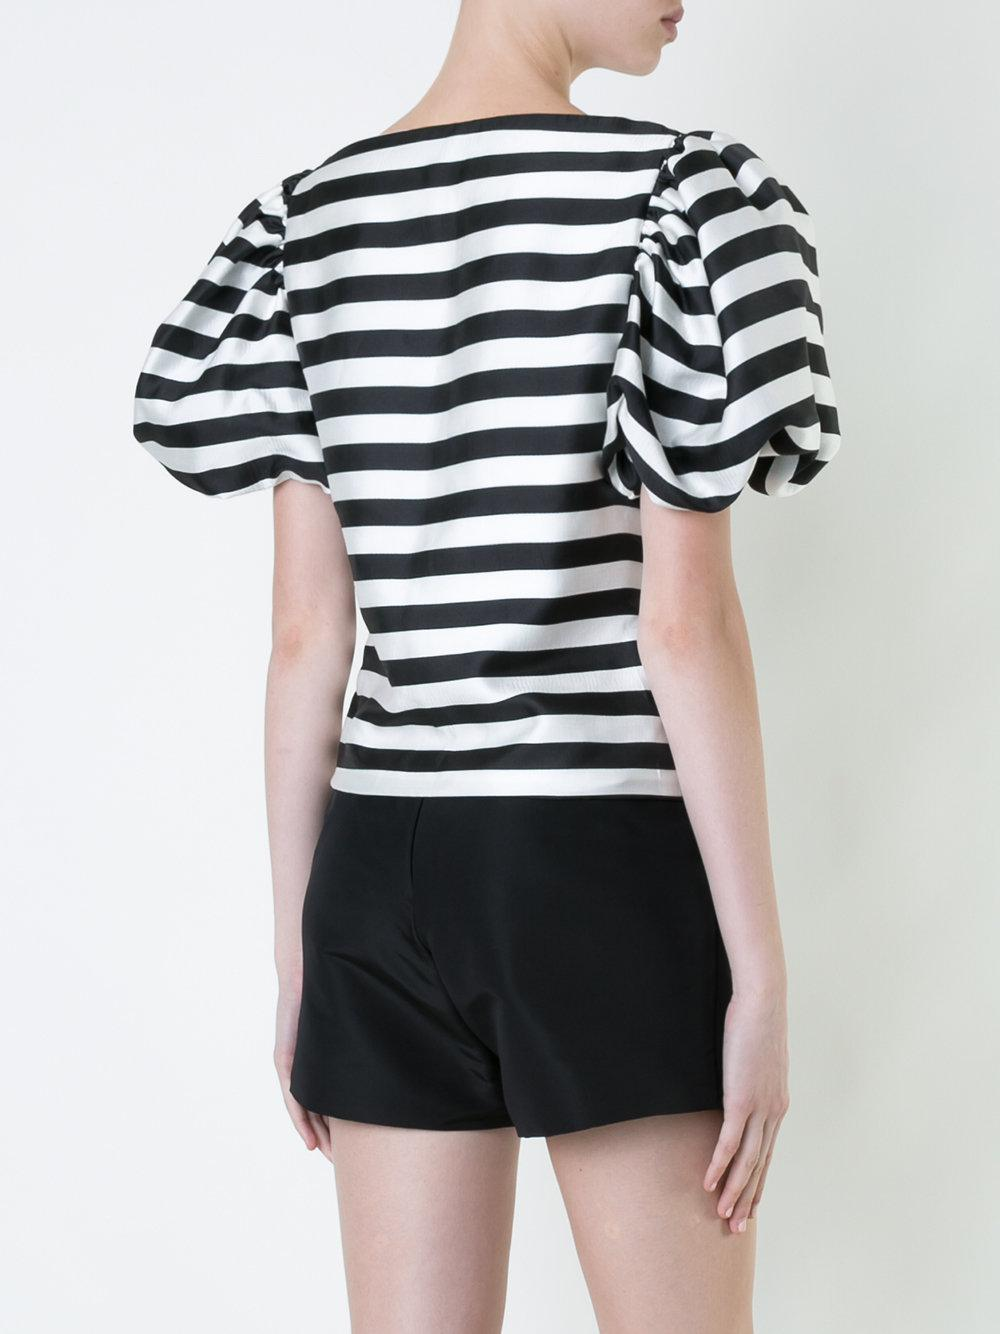 Free Shipping Shopping Online Discount Explore striped sailor top - Black Bambah For Cheap Sale Online Free Shipping Excellent Choice Cheap Price bHmDgx9V